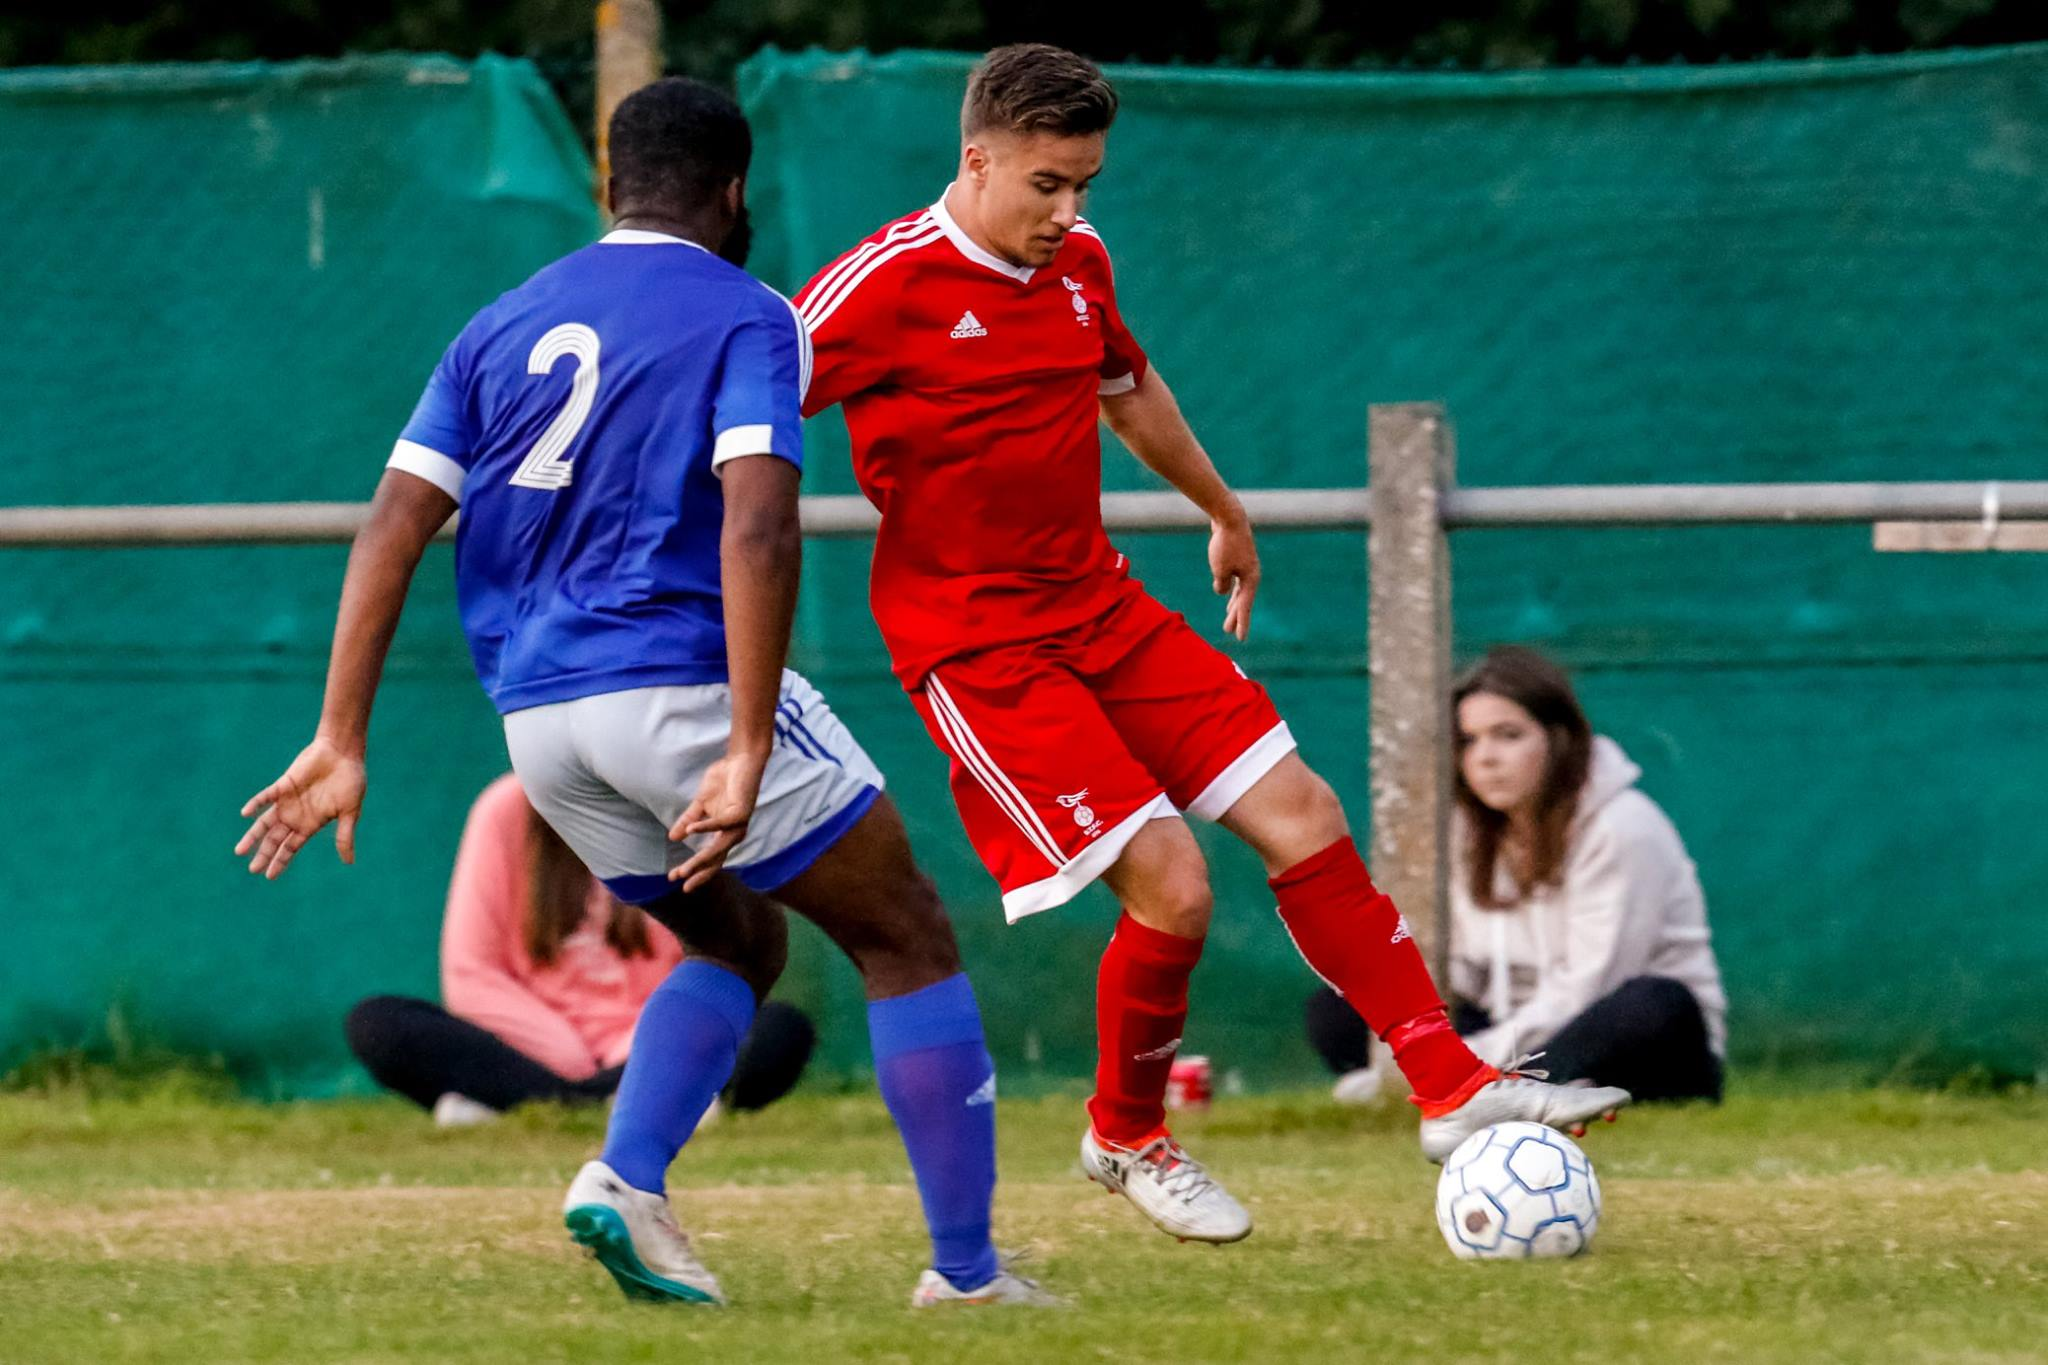 Bracknell Town FC demolish Brackley in one sided affair at Bottom Meadow